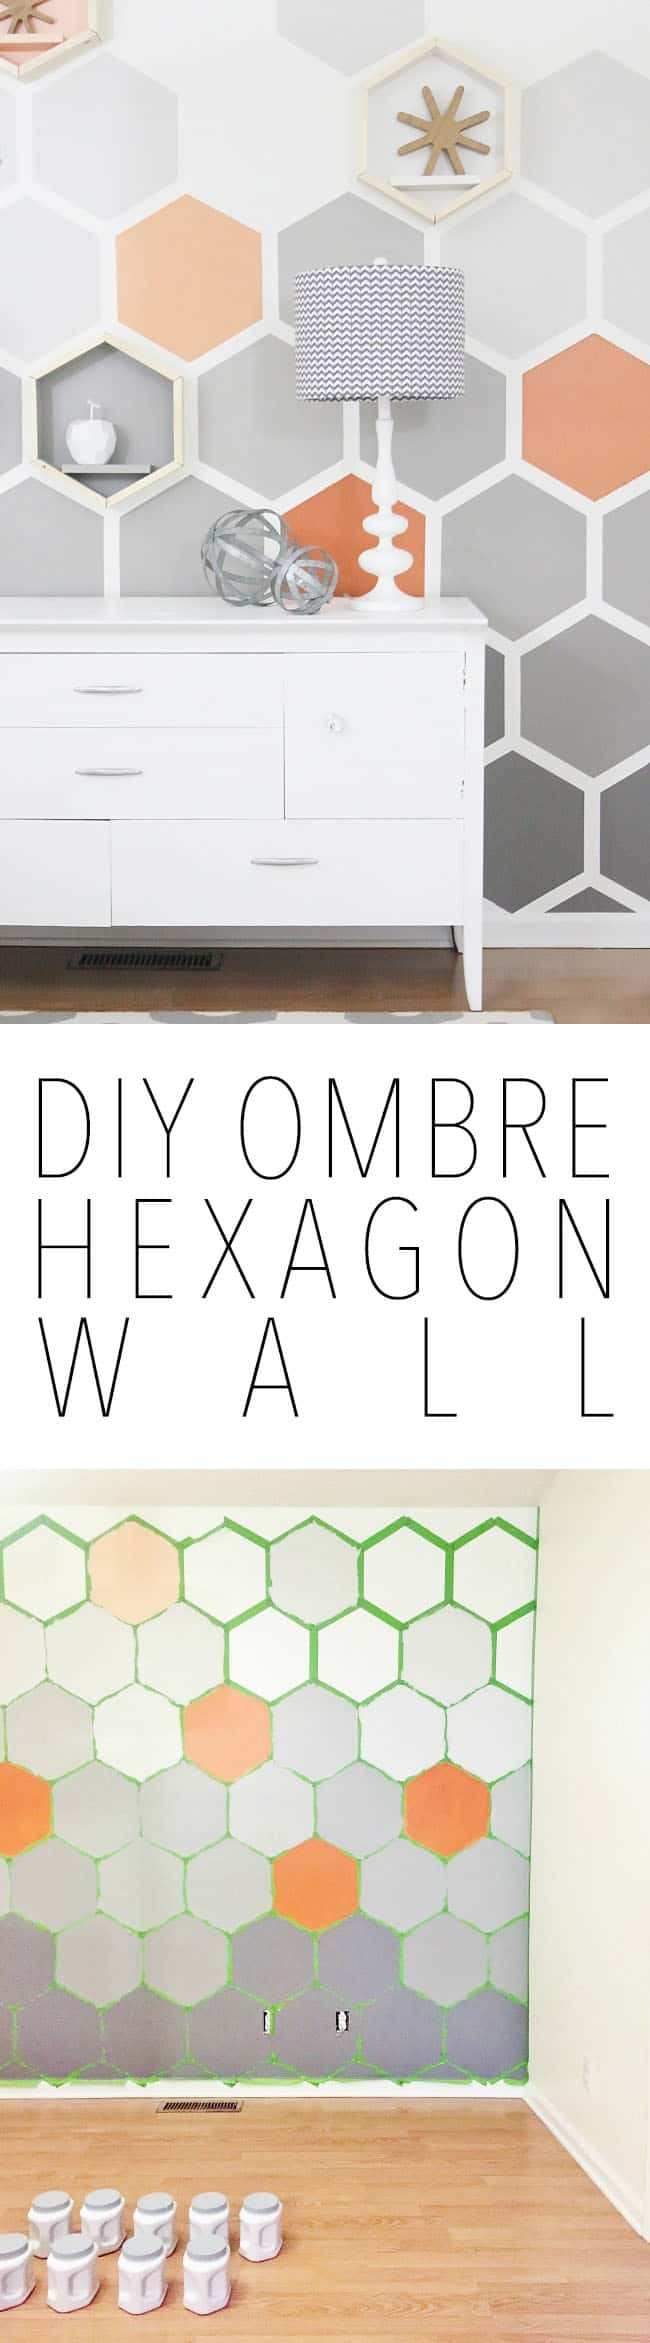 Hexagon-Wall-How-To-Tower-1